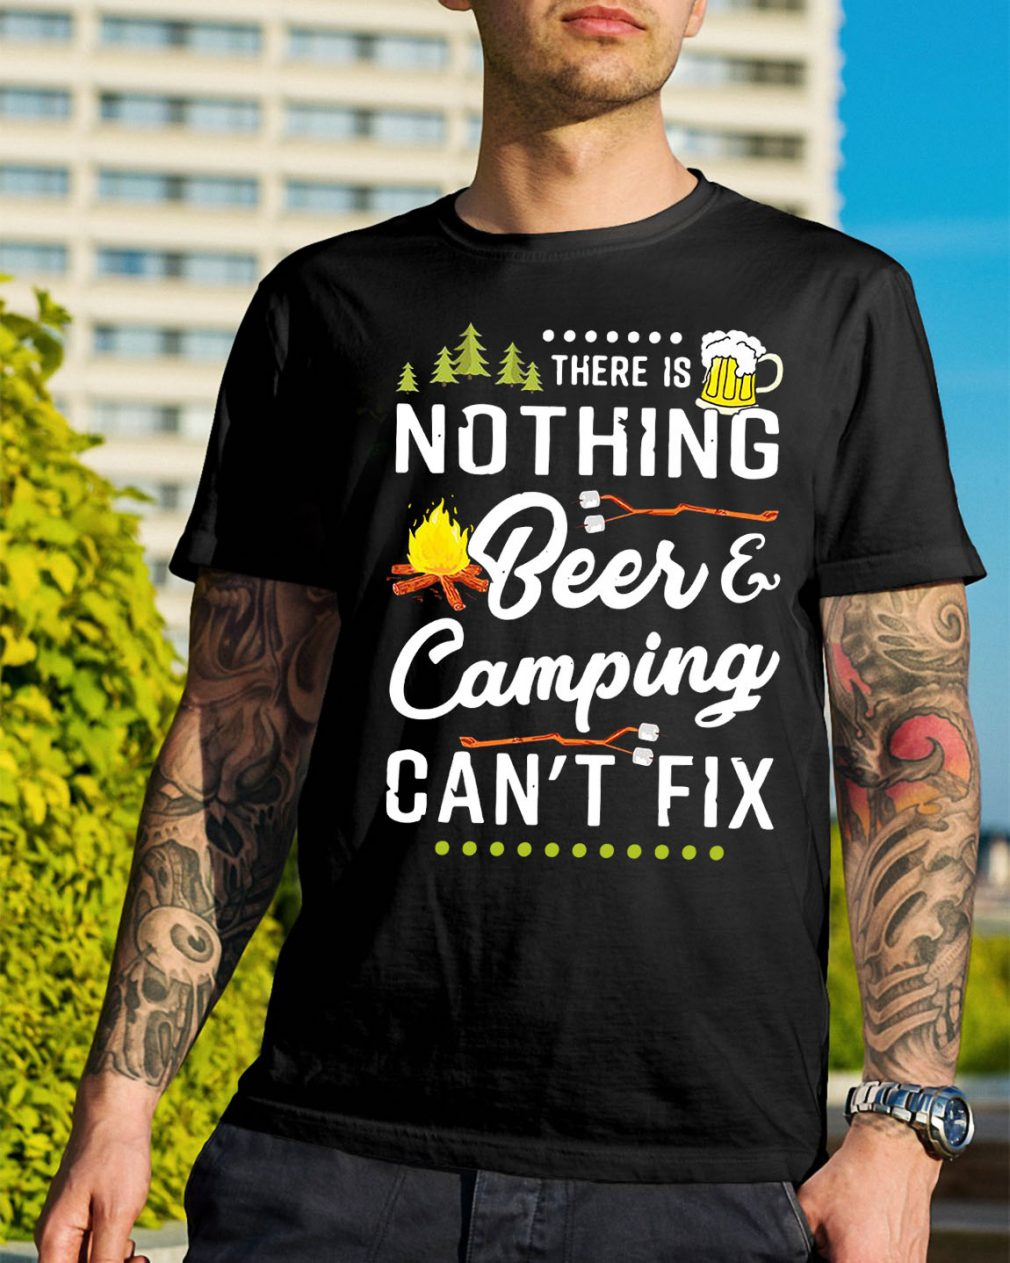 There is nothing beer and camping can't fix shirt